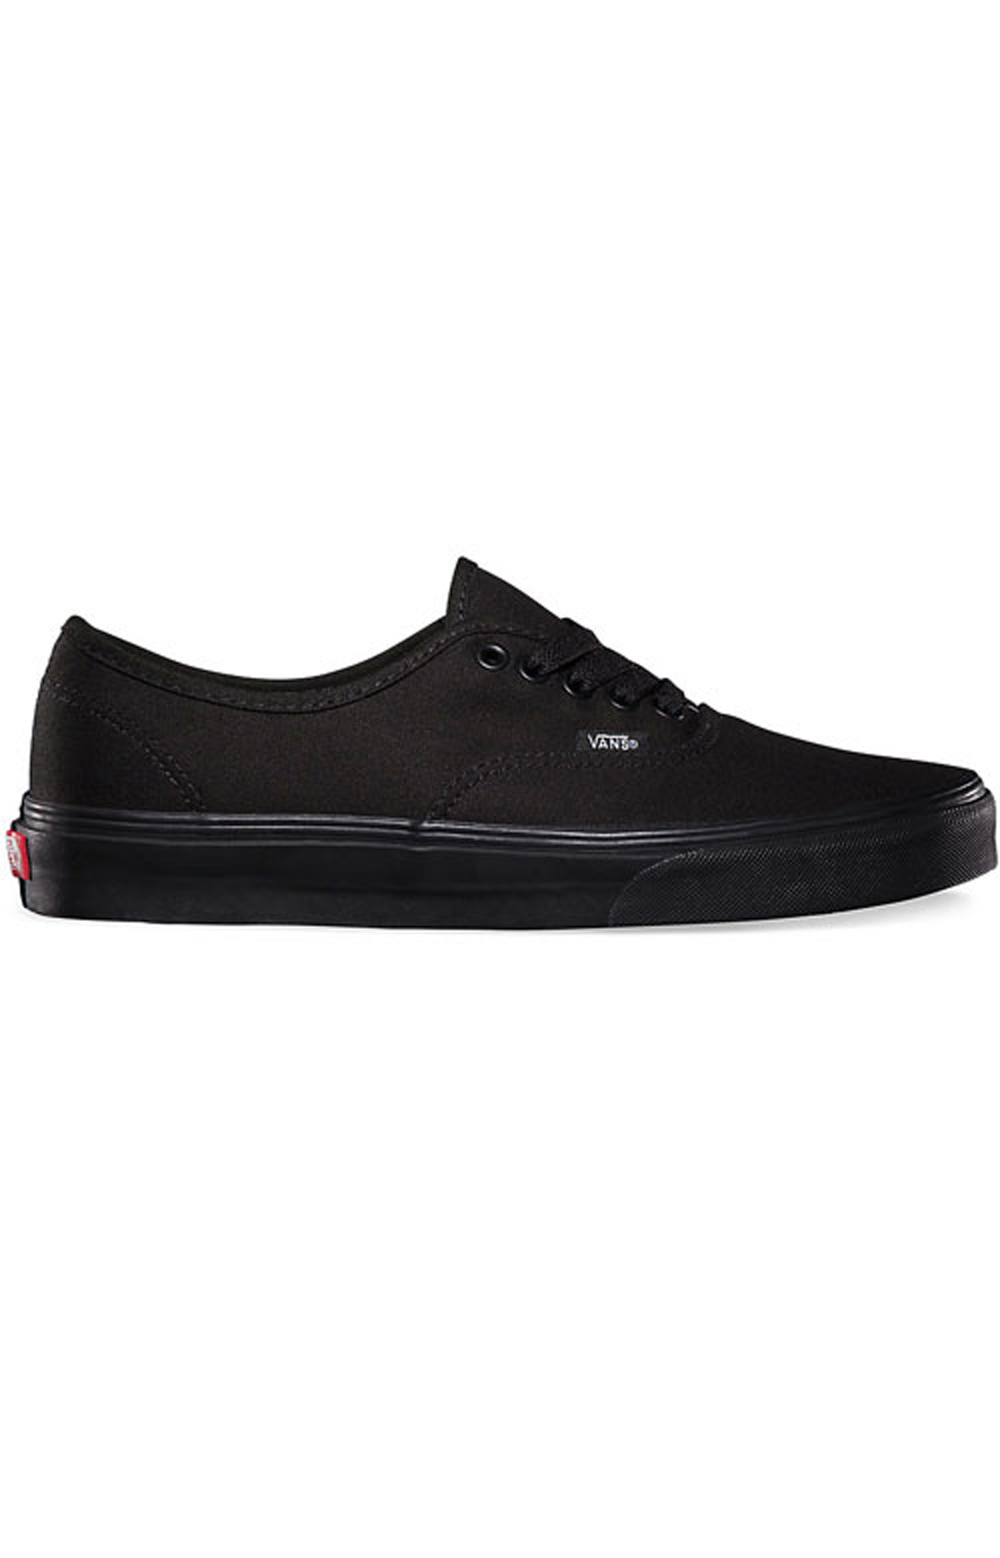 (EE3BKA) Authentic Shoe - Black/Black